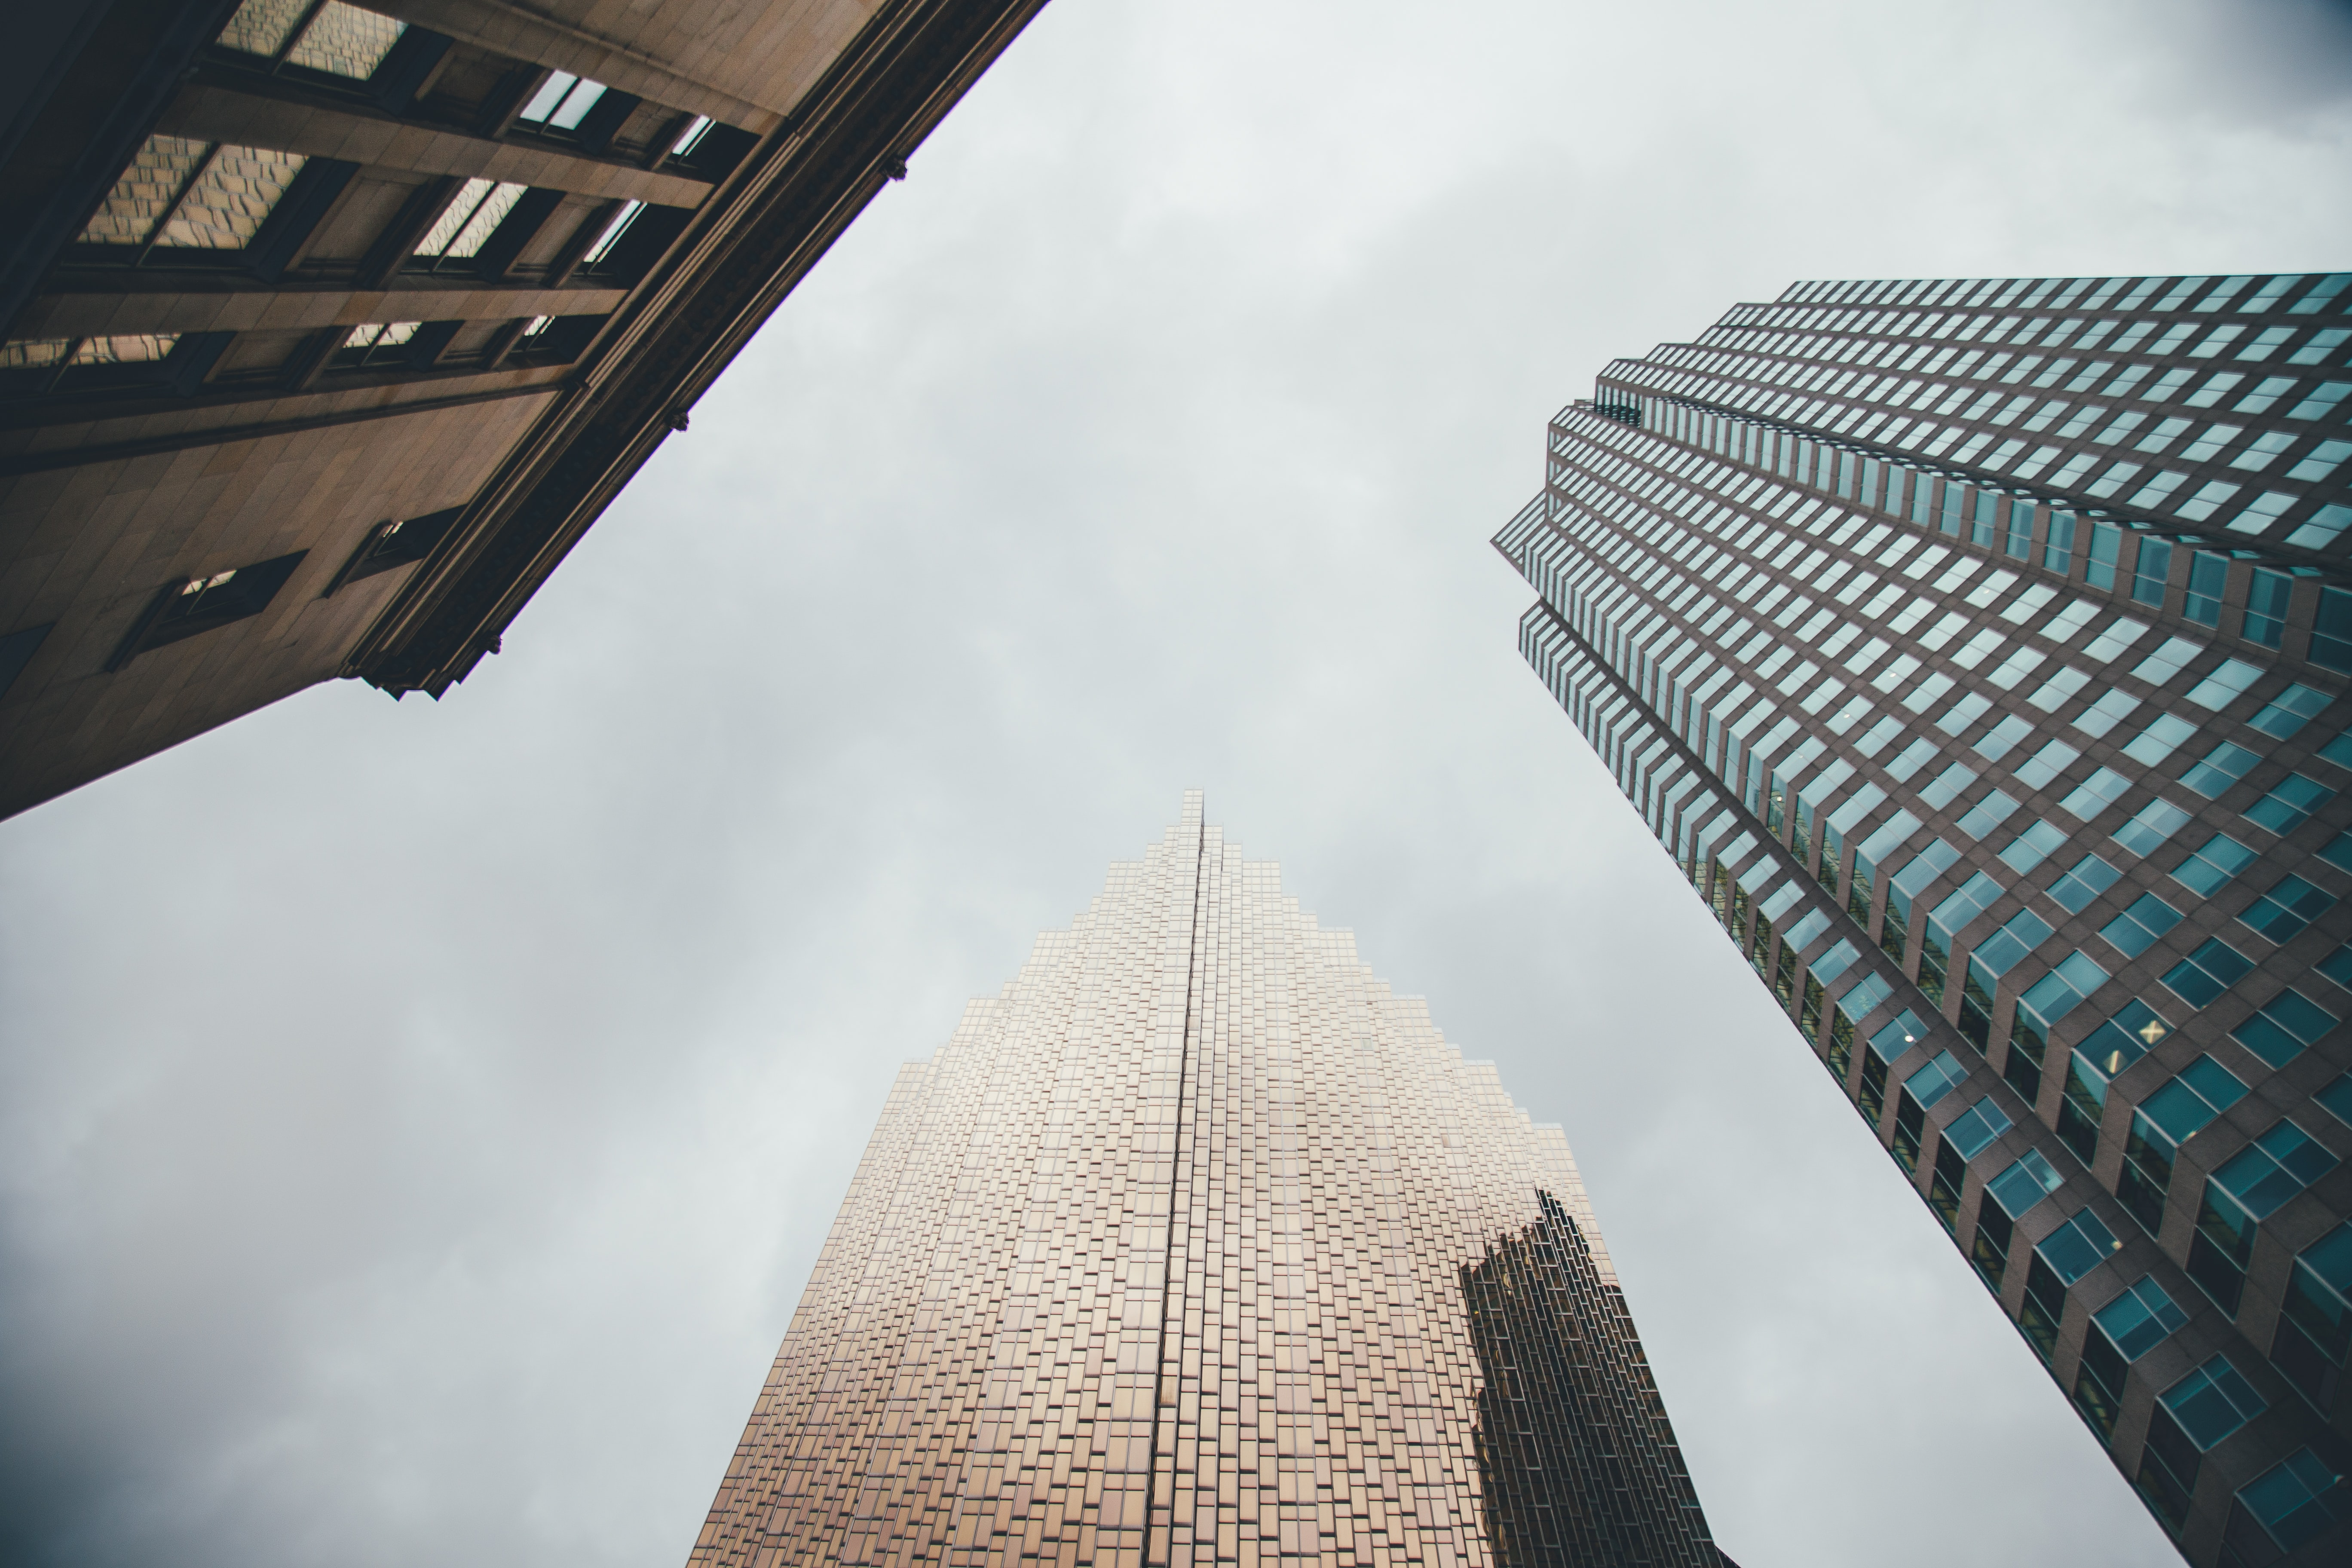 low angle photography of three high-rise buildings